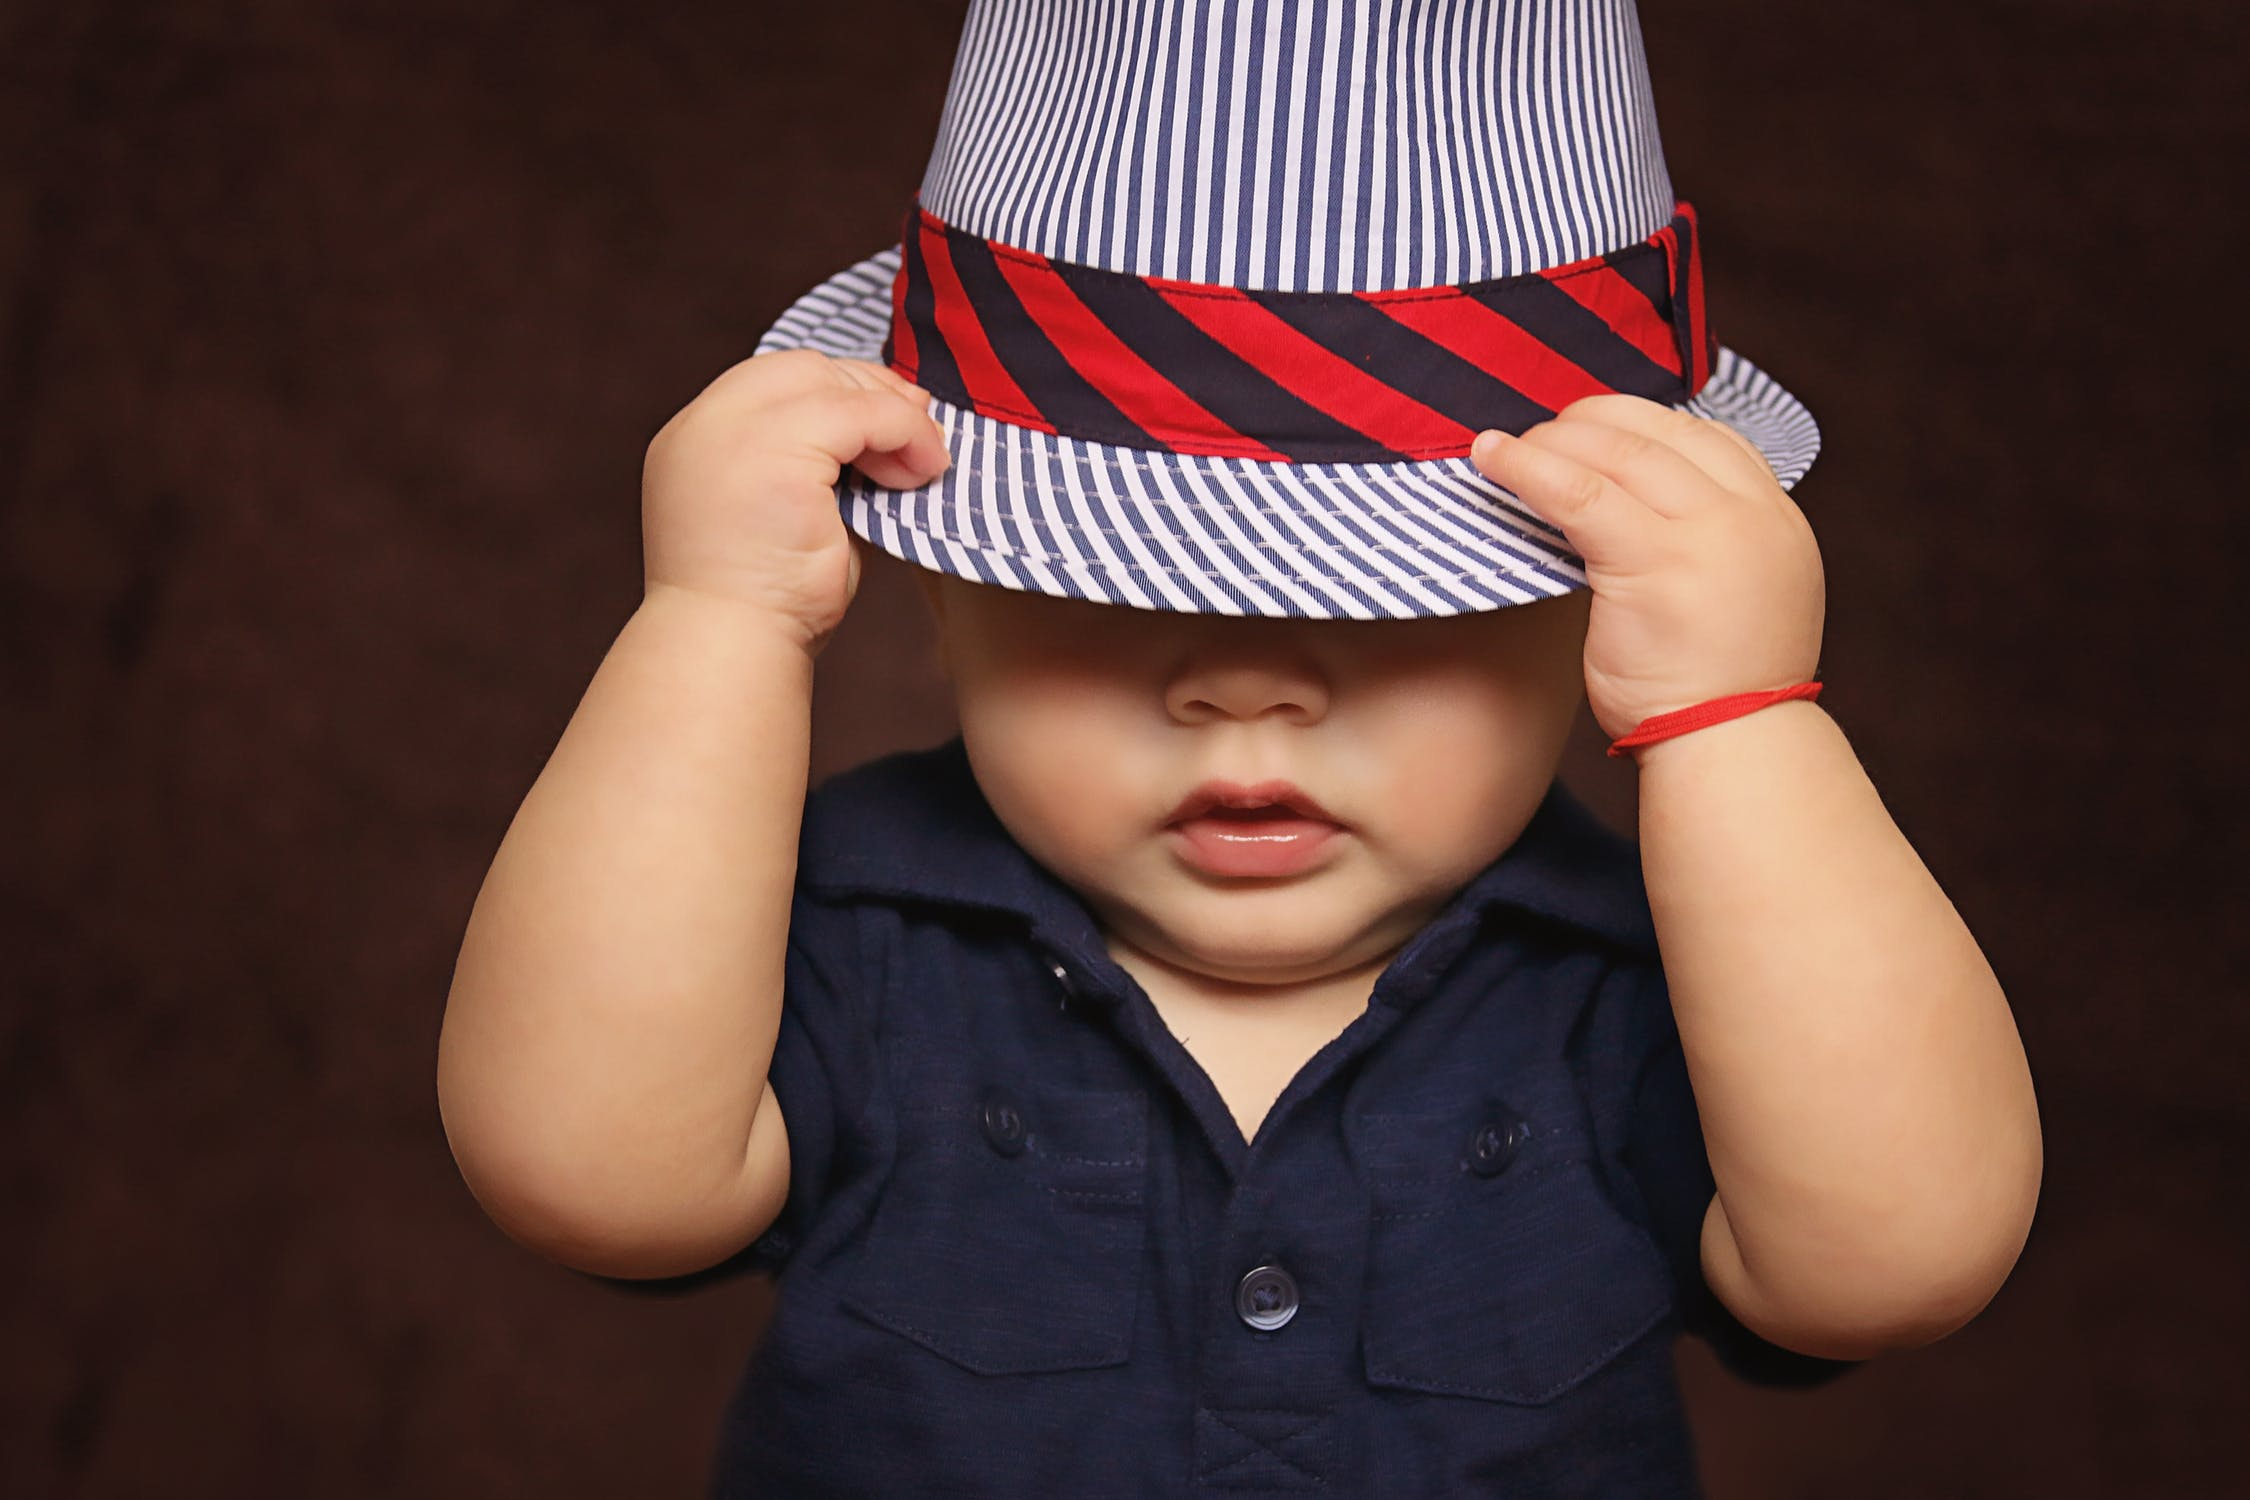 baby boy hat covered 101537 - Cute Baby Photography 2018